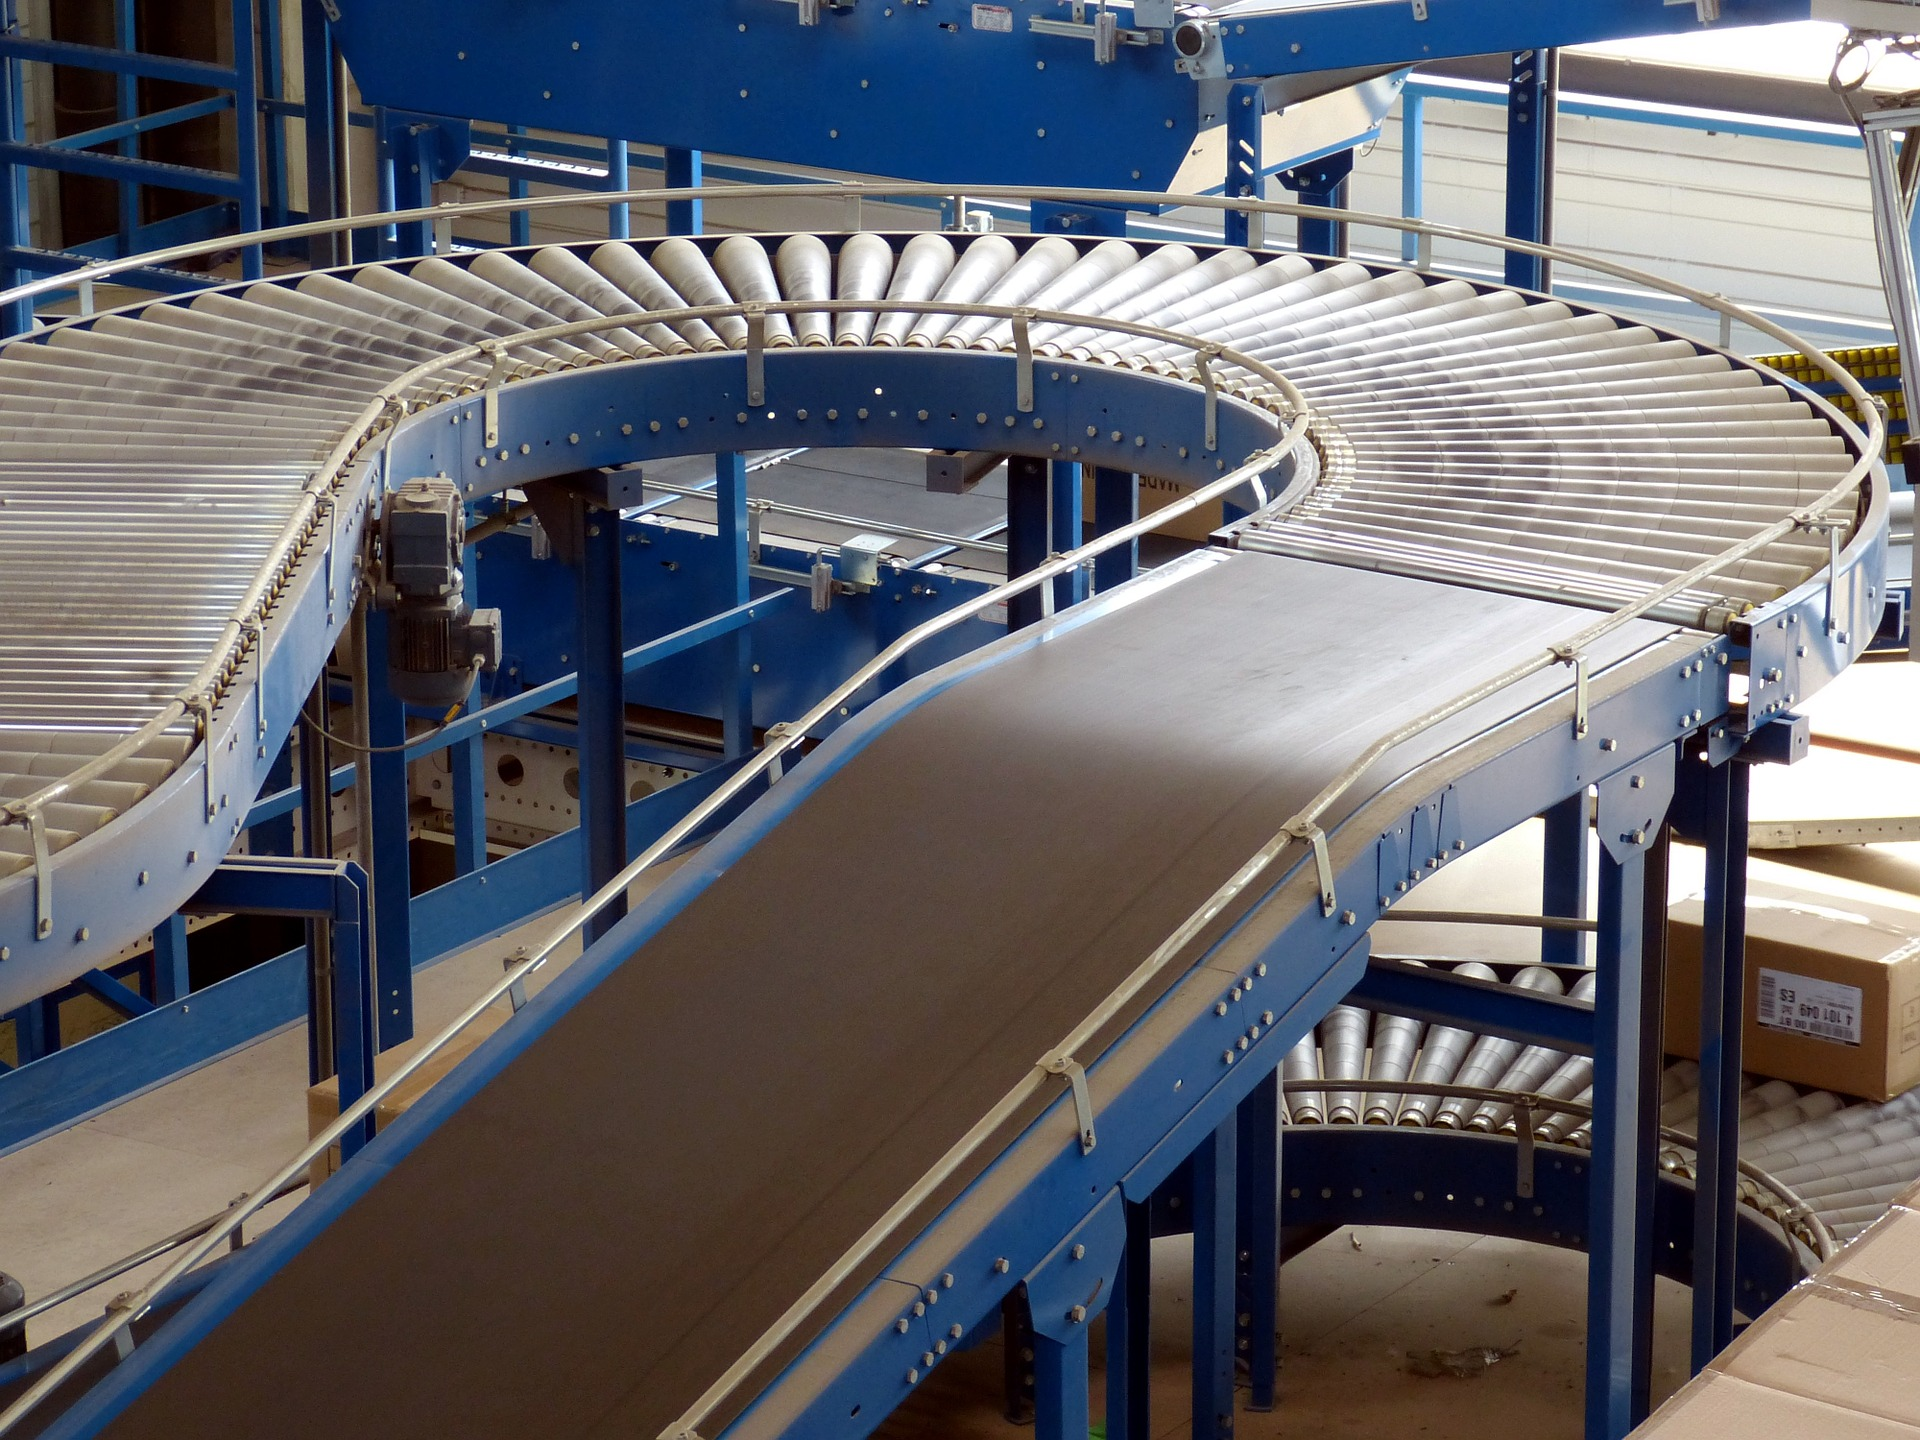 Distribution - Conveyer belt